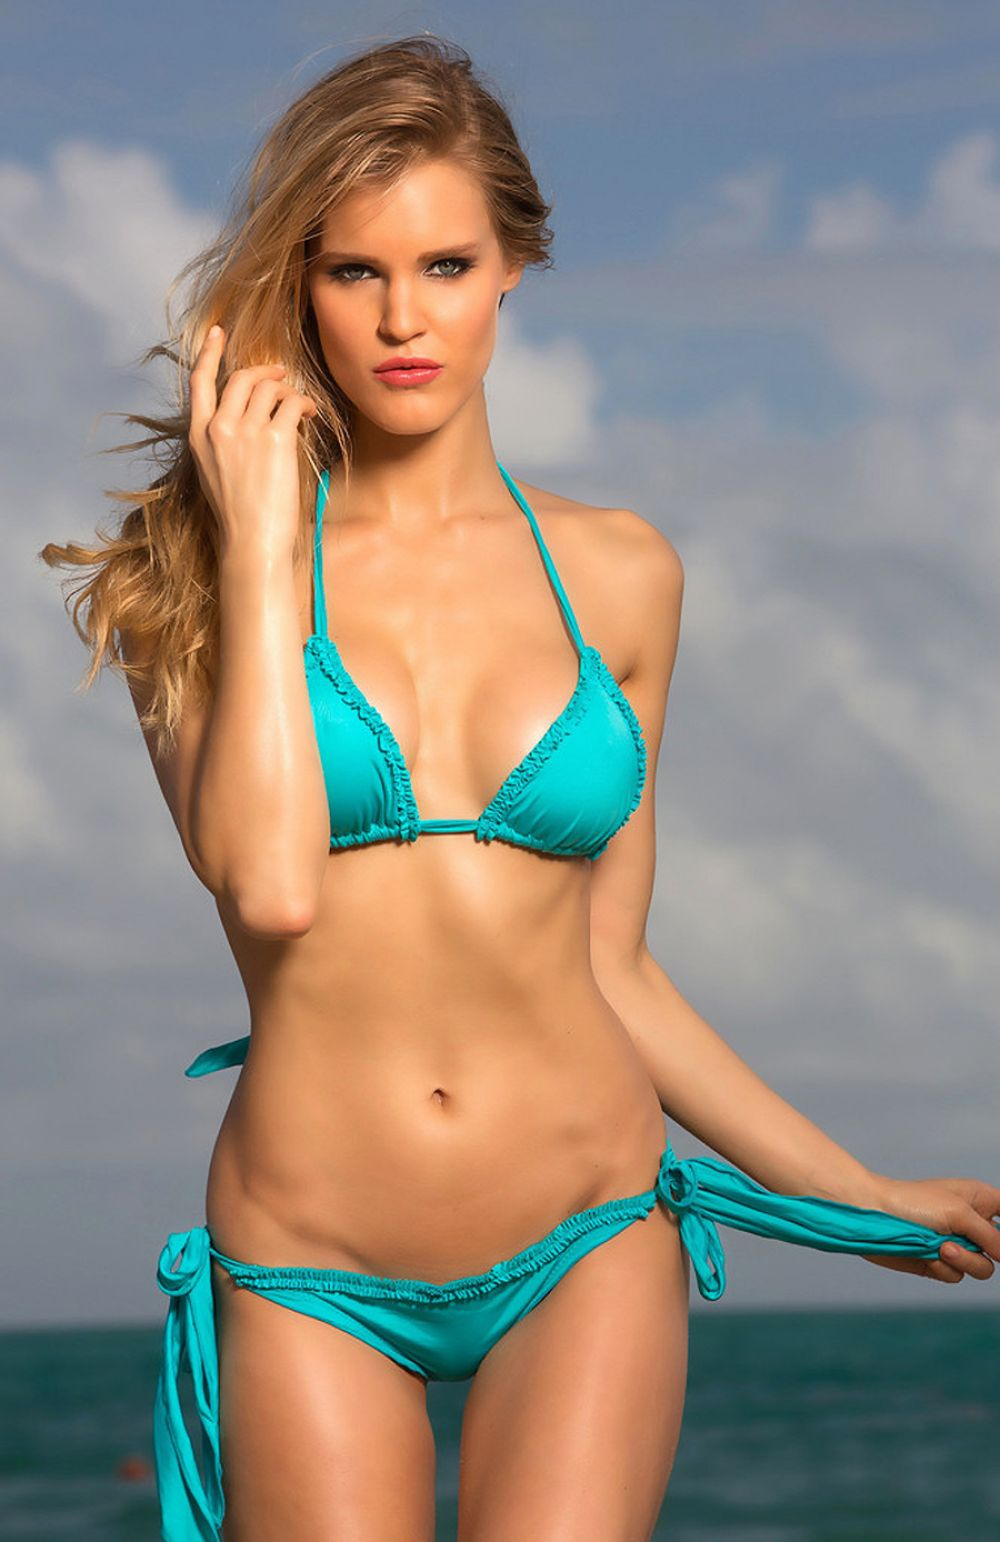 joy-corringan-summerlove-swimwear-2014-collection_16.jpg - 125.97 KB